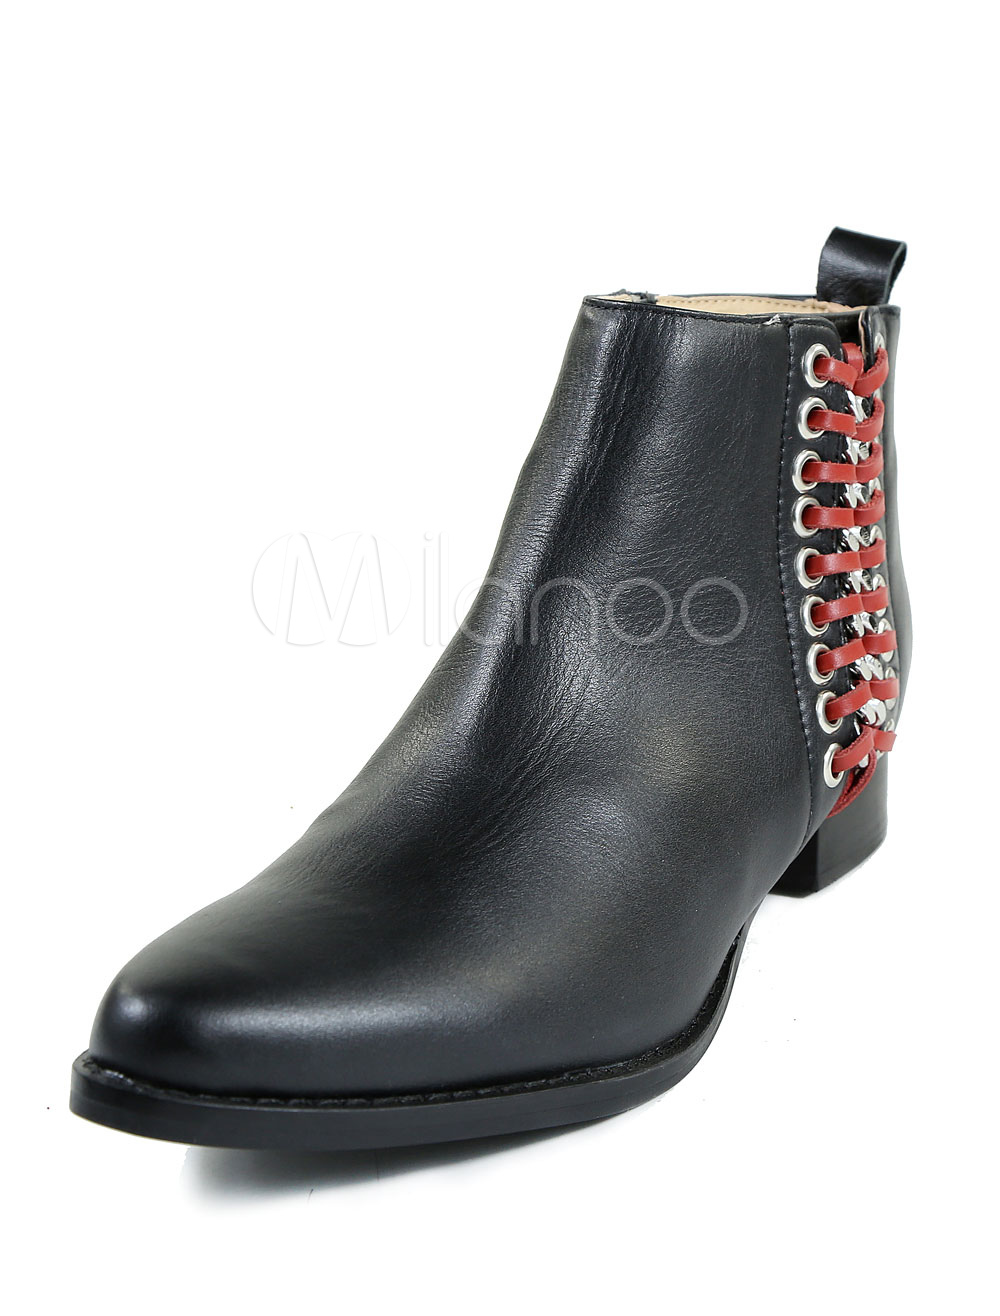 Black Ankle Boots Men's Round Toe Flat Lace Up Two Tone Leather Booties